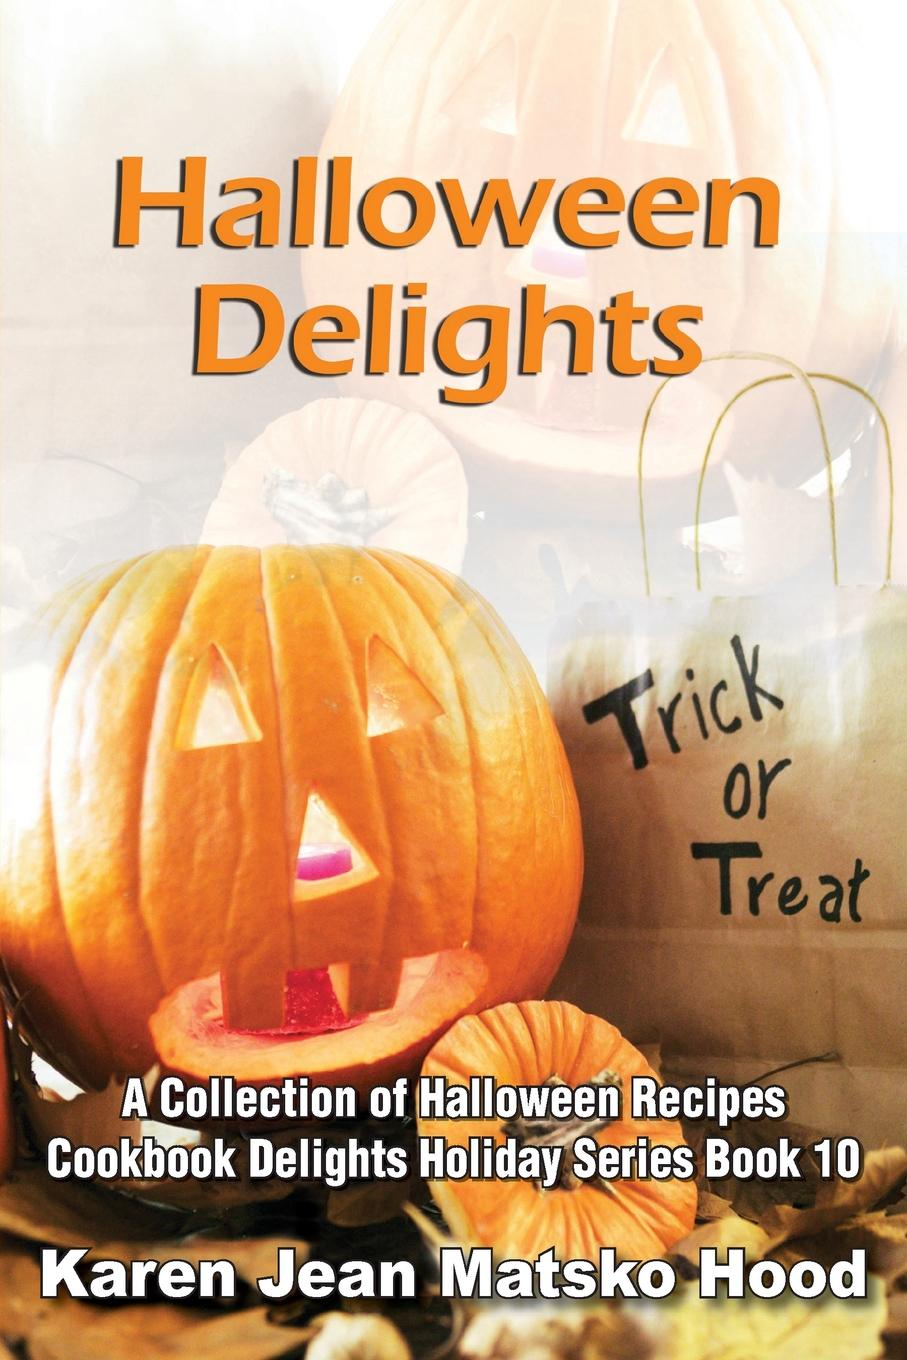 Karen Jean Matsko Hood Halloween Delights Cookbook. A Collection of Halloween Recipes the coconut miracle cookbook